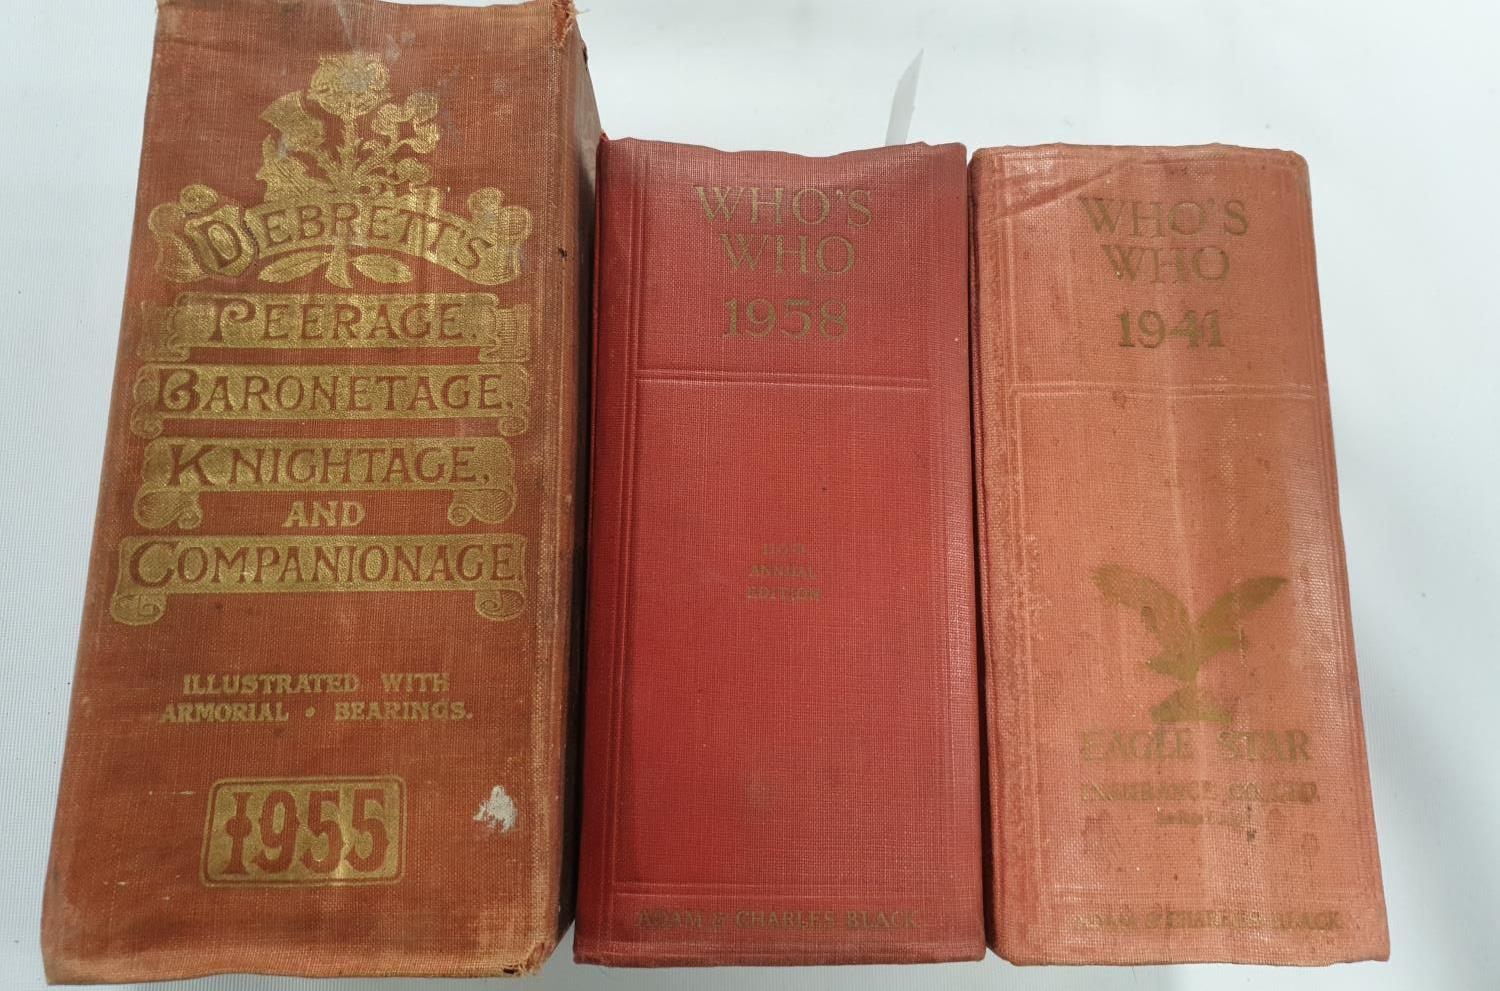 Lot 11 - The Who's Who 1941 & 1958 along with Derbrets Peerage, Baronetage, Knightage and Companionage 1955